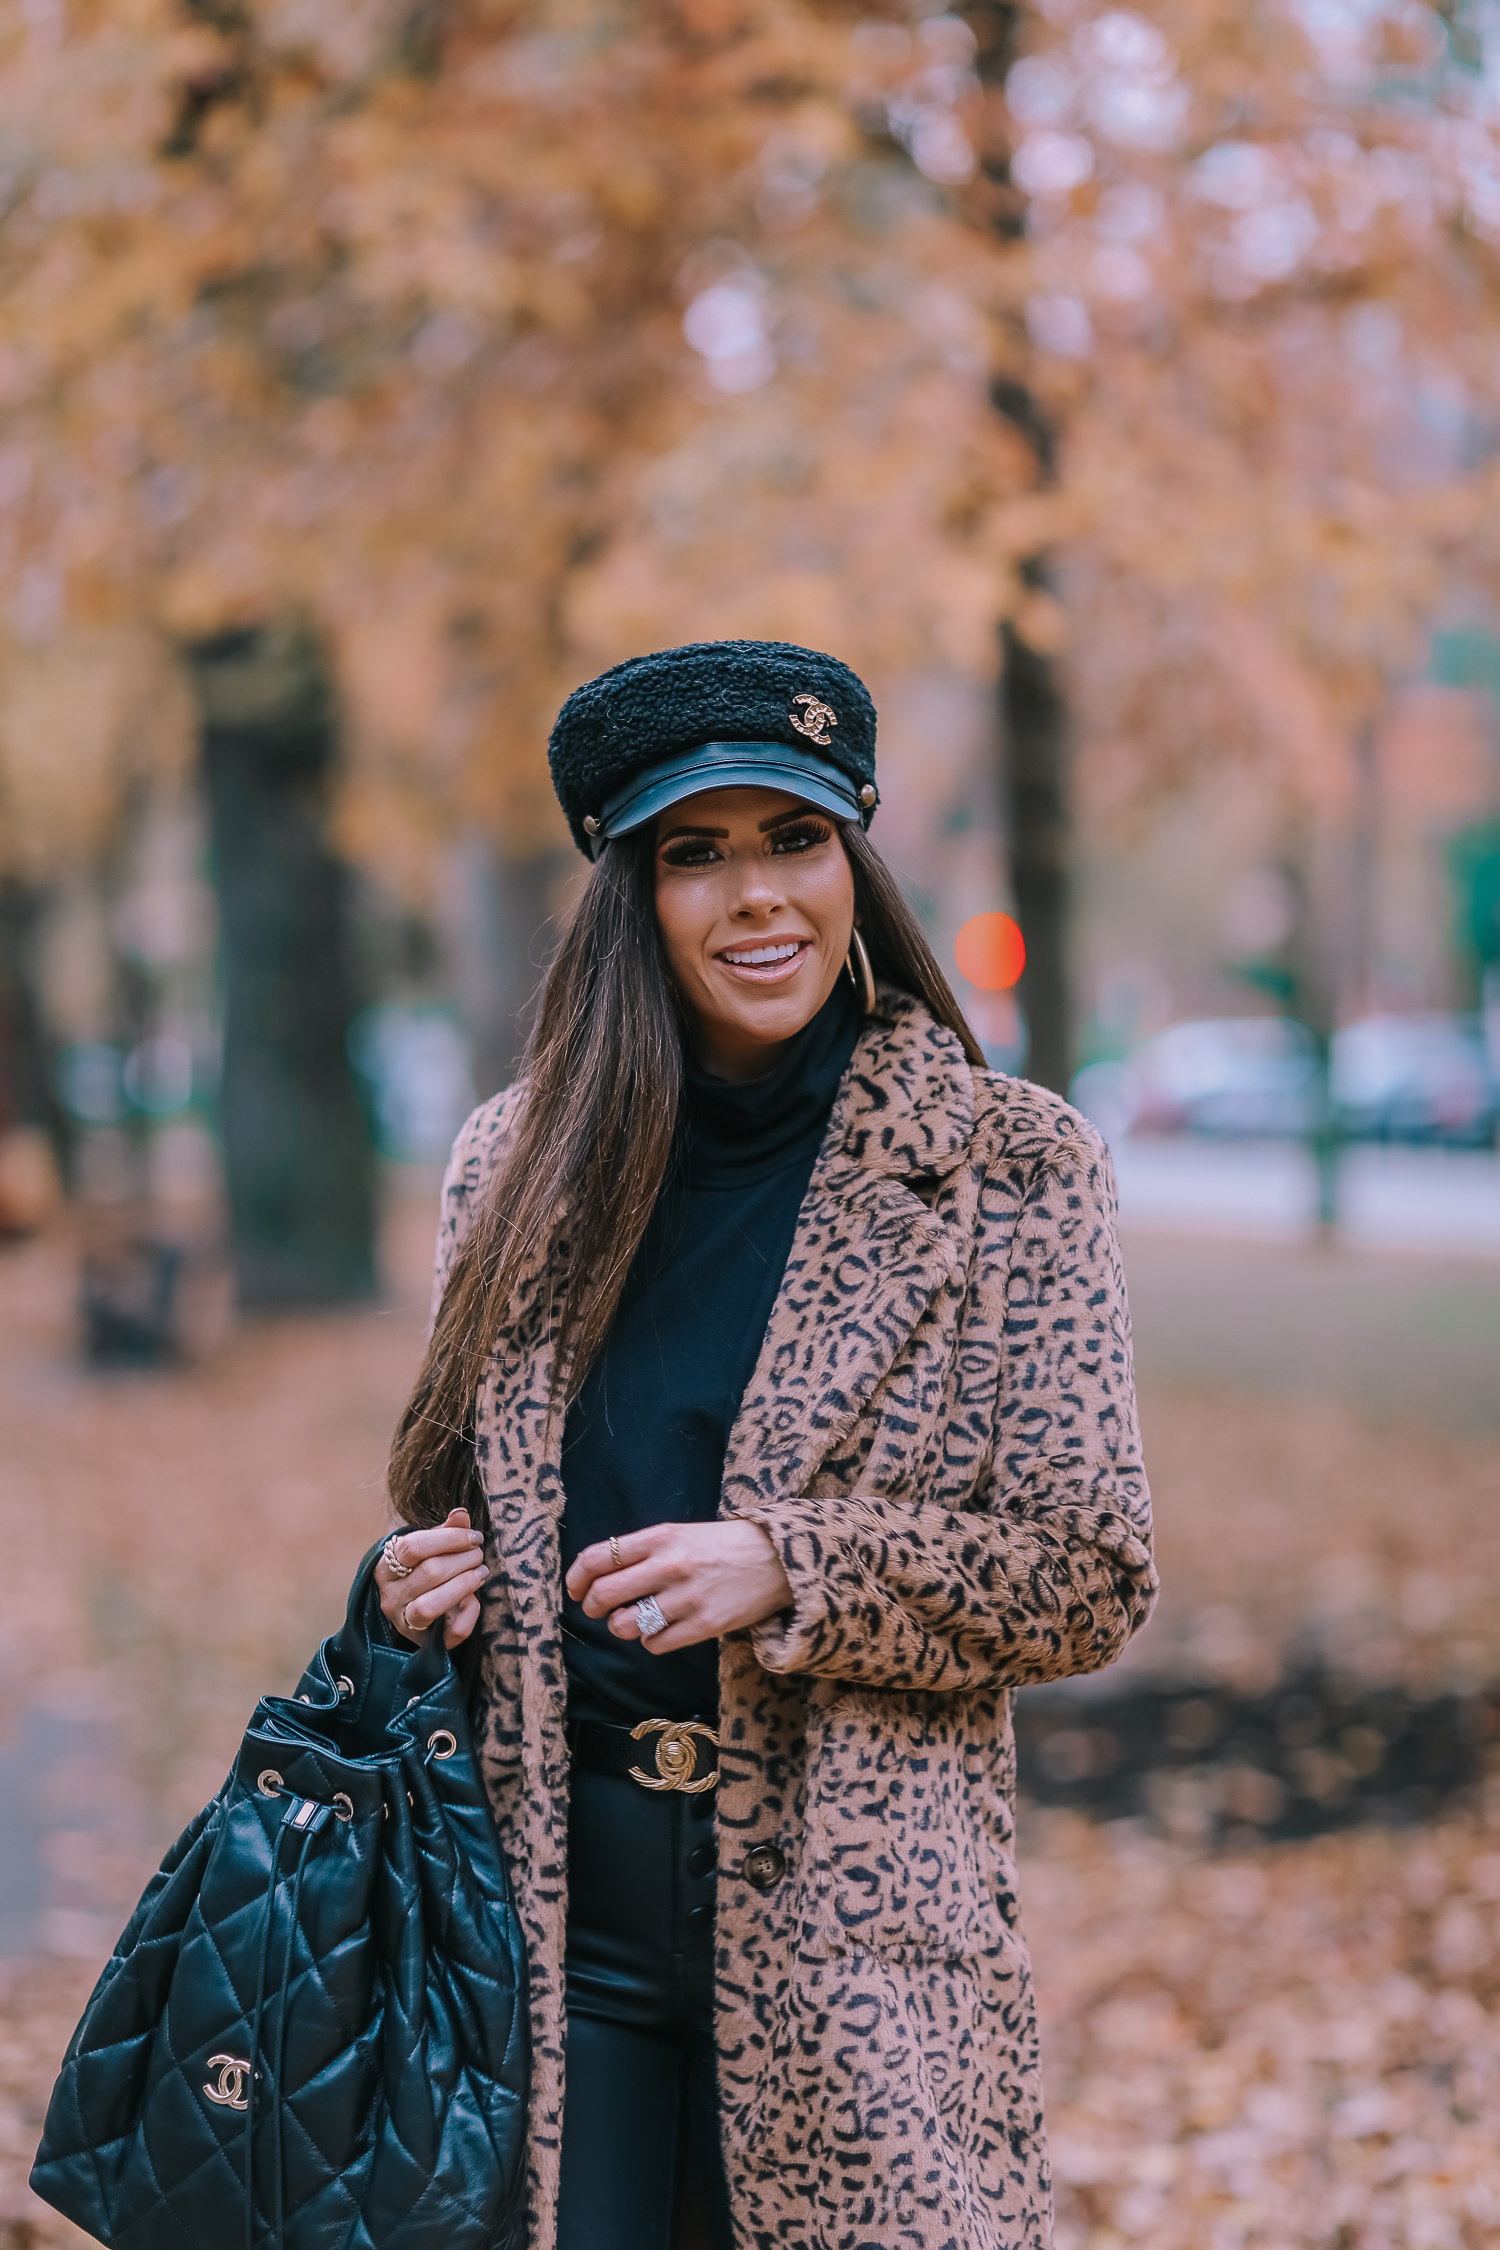 Faux Fur Leopard Coat styled by top US fashion blogger, Emily Gemma of The Sweetest Thing: image of a woman wearing a Mural faux fur leopard coat.